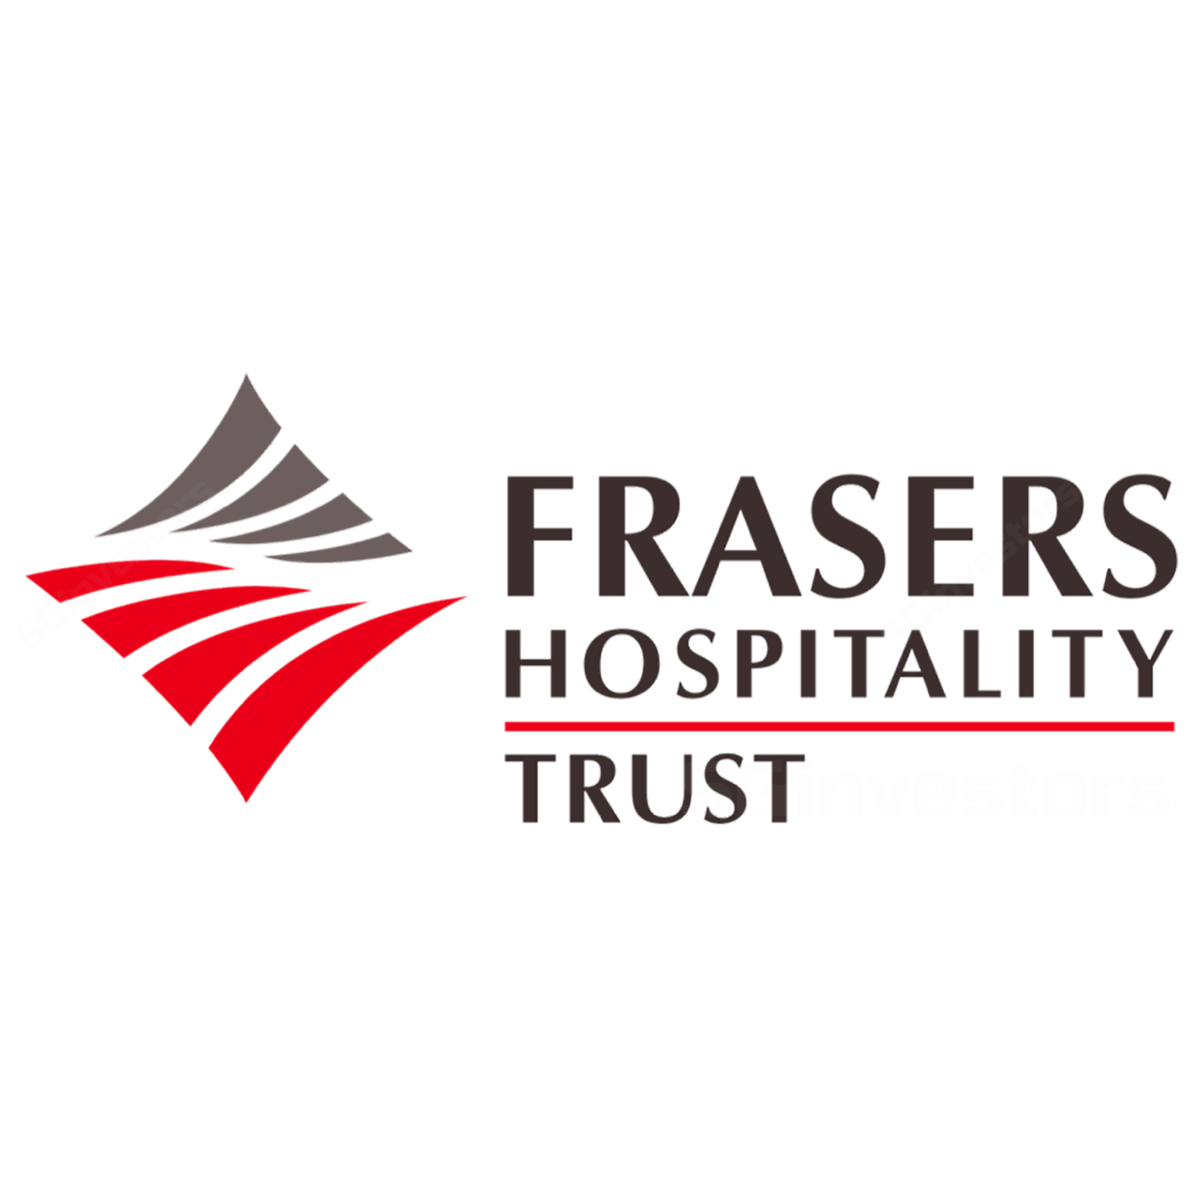 Frasers Hospitality Trust - UOB Kay Hian Research 2018-07-30: 2q18 Results Below Expectations